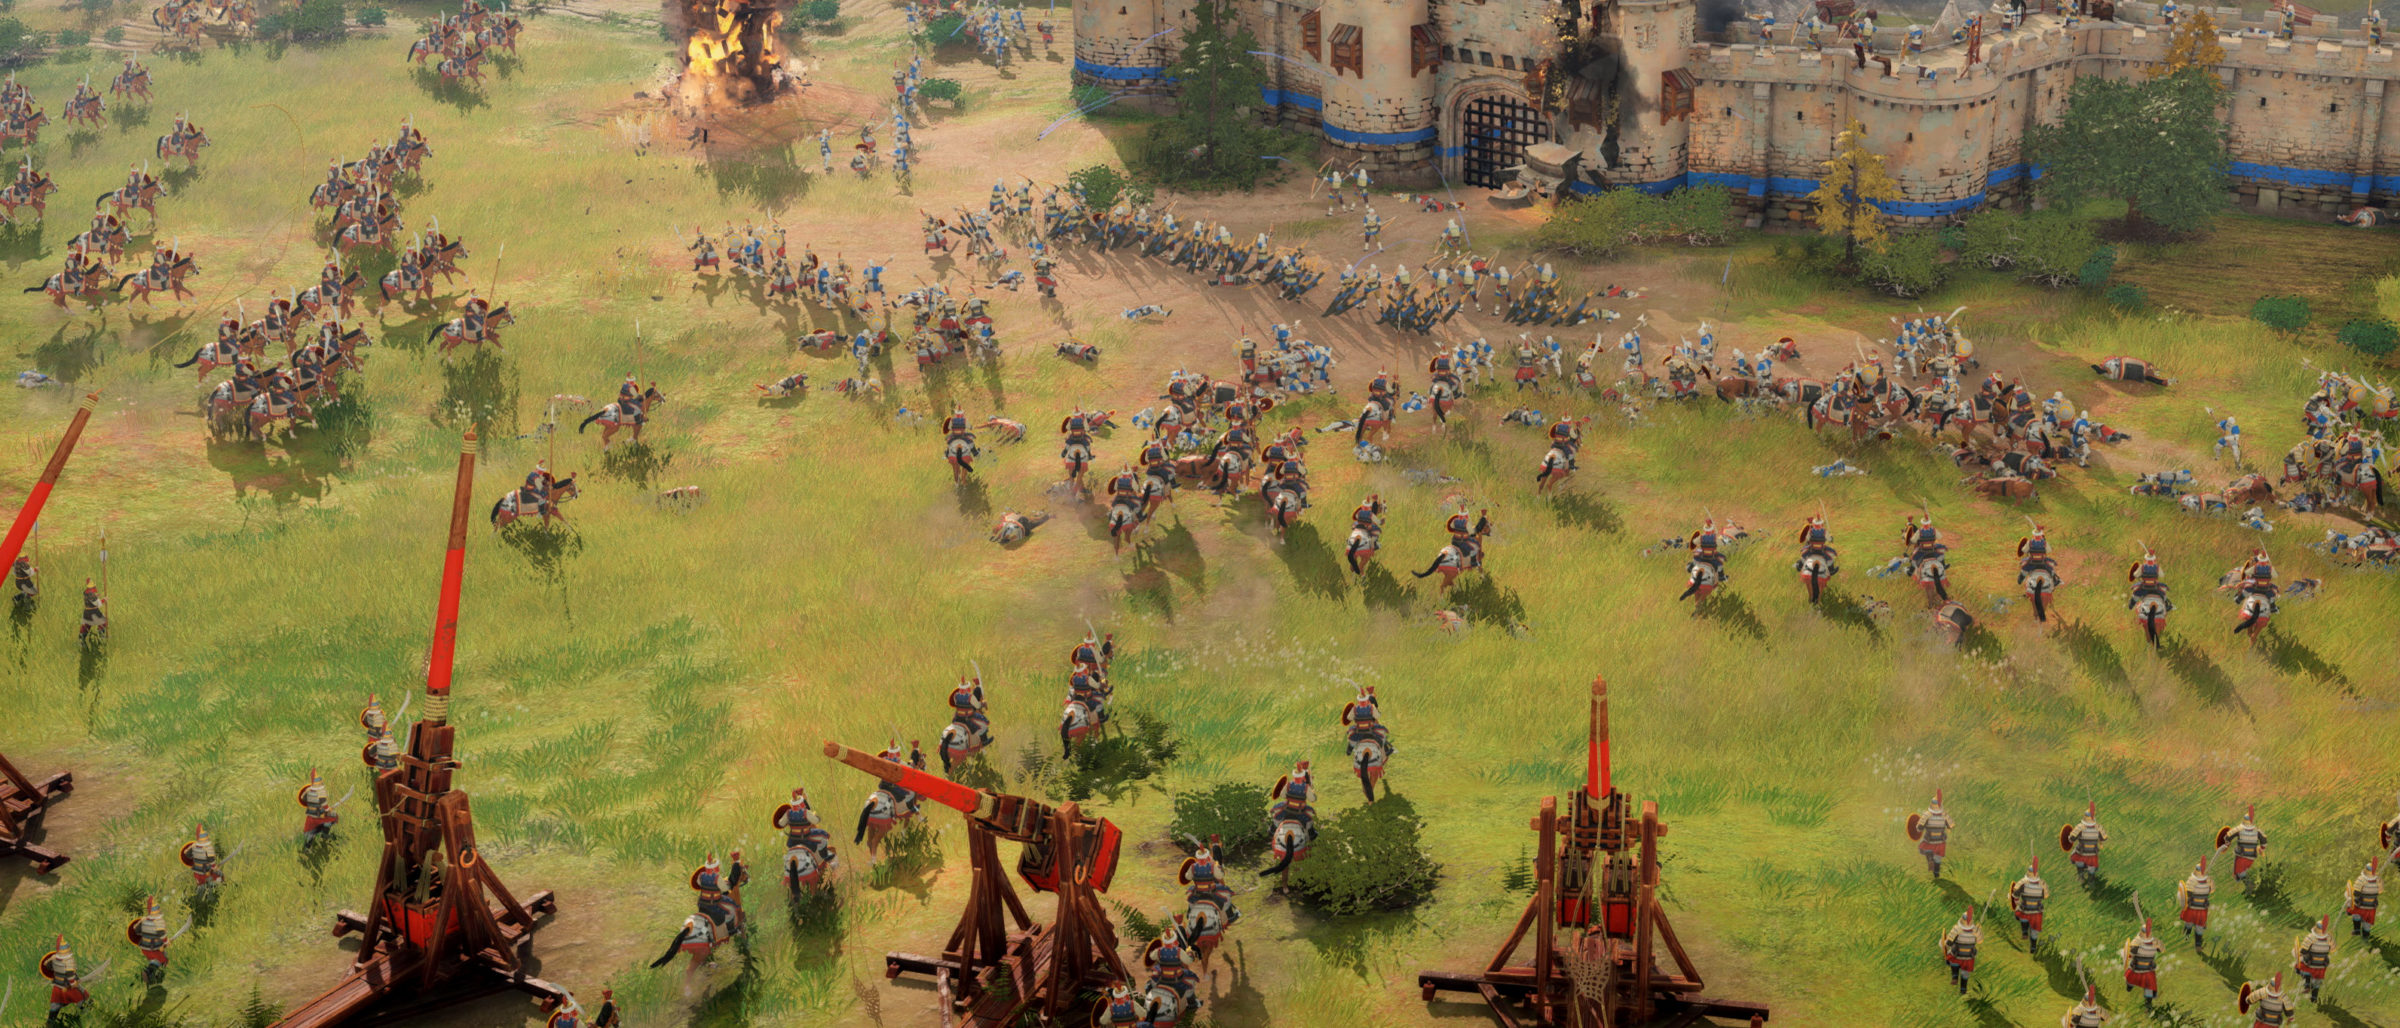 Screenshot of battle scene with trebuchets from Age of Empires game